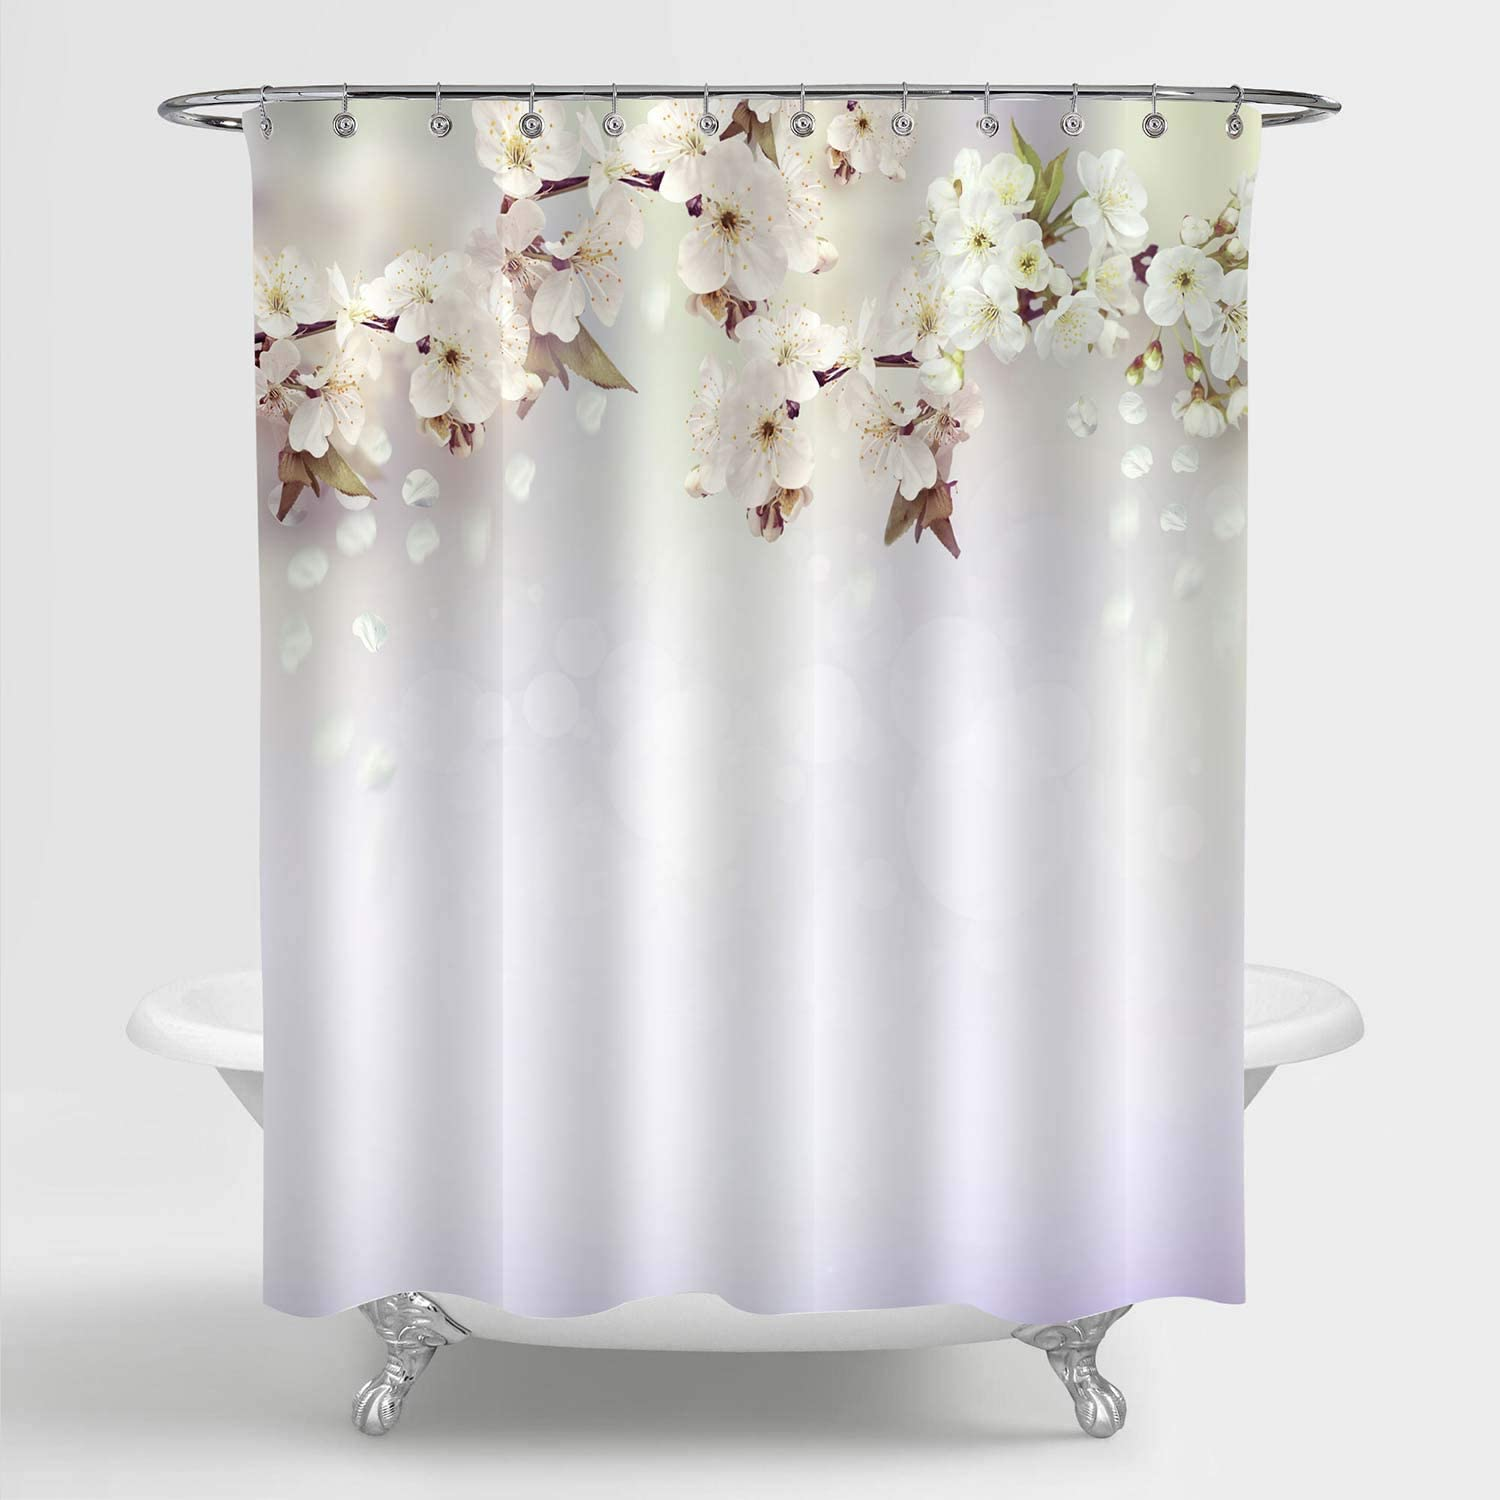 MitoVilla Spring Cherry Blossom Shower Curtain Set for Women and Girls Bathroom Decor, Lovely Cherry Tree Branches and Flying Florals Nature Scenic Bathroom Accessories, Light Lavender, 72